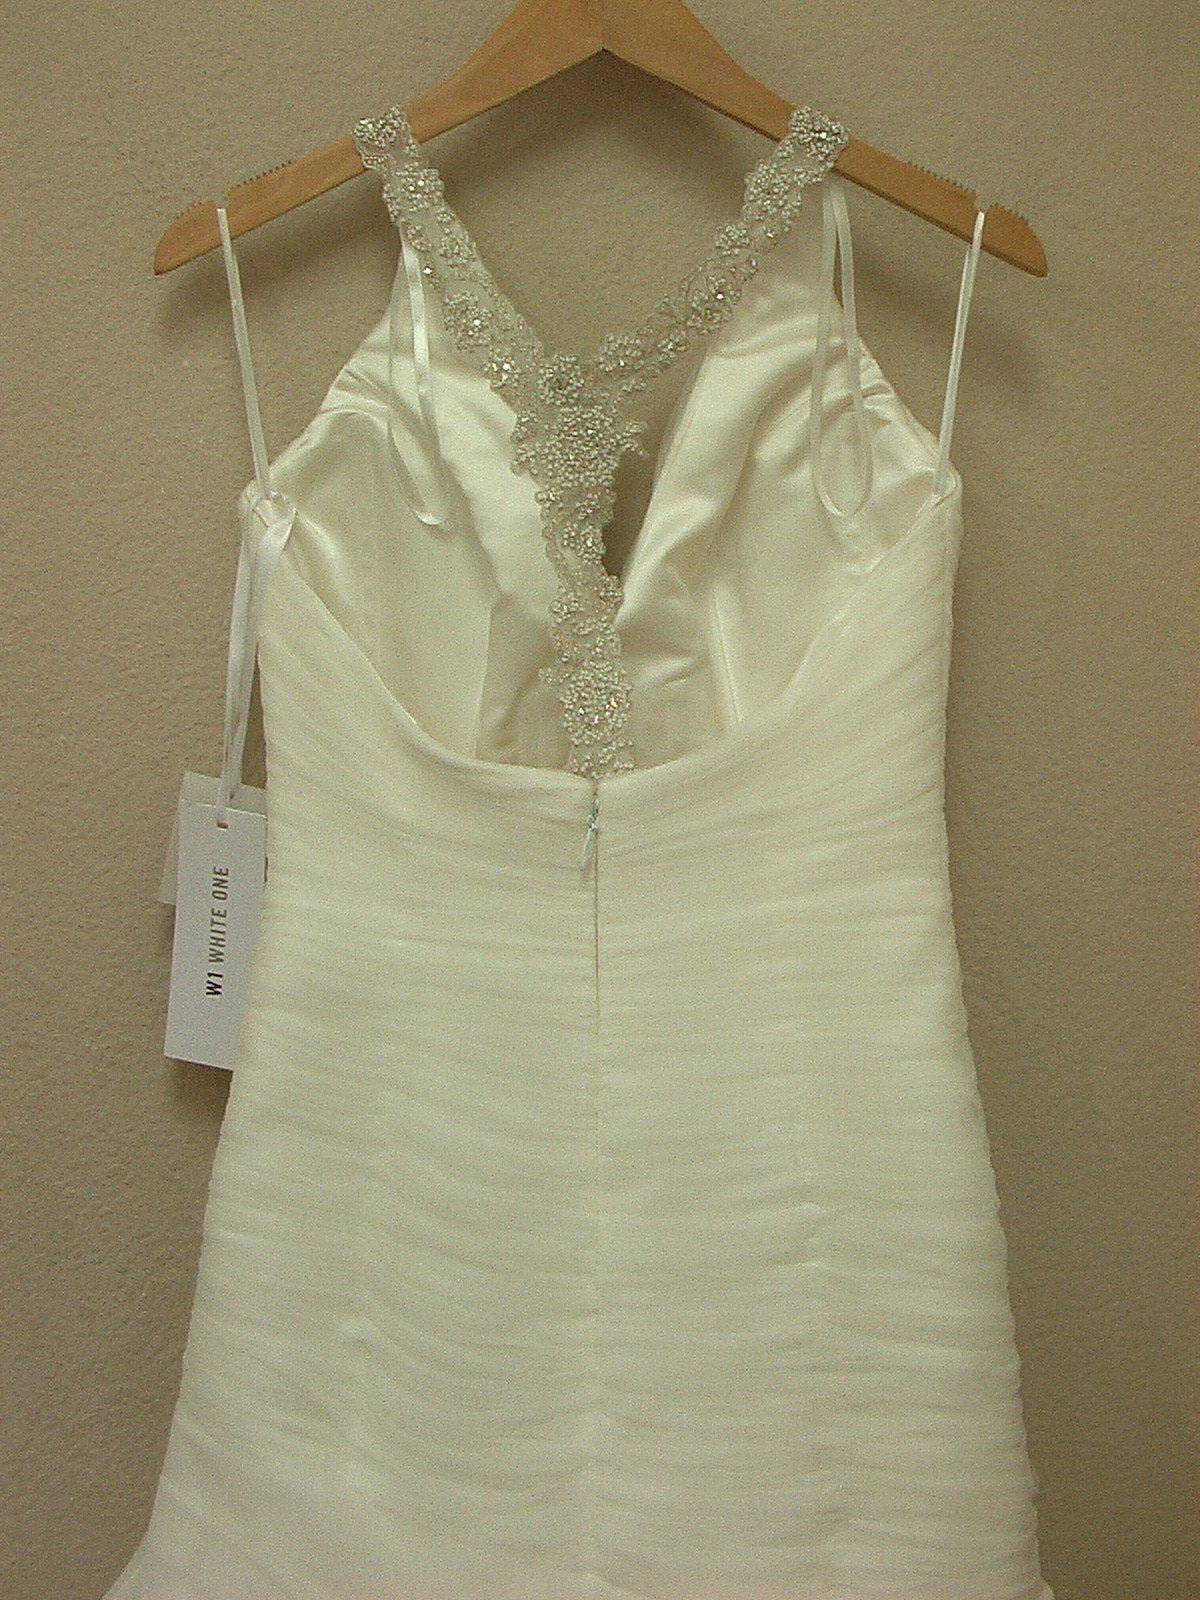 White One Nopal by Pronovias Off White size 8 In Stock Wedding Dress - Tom's Bridal